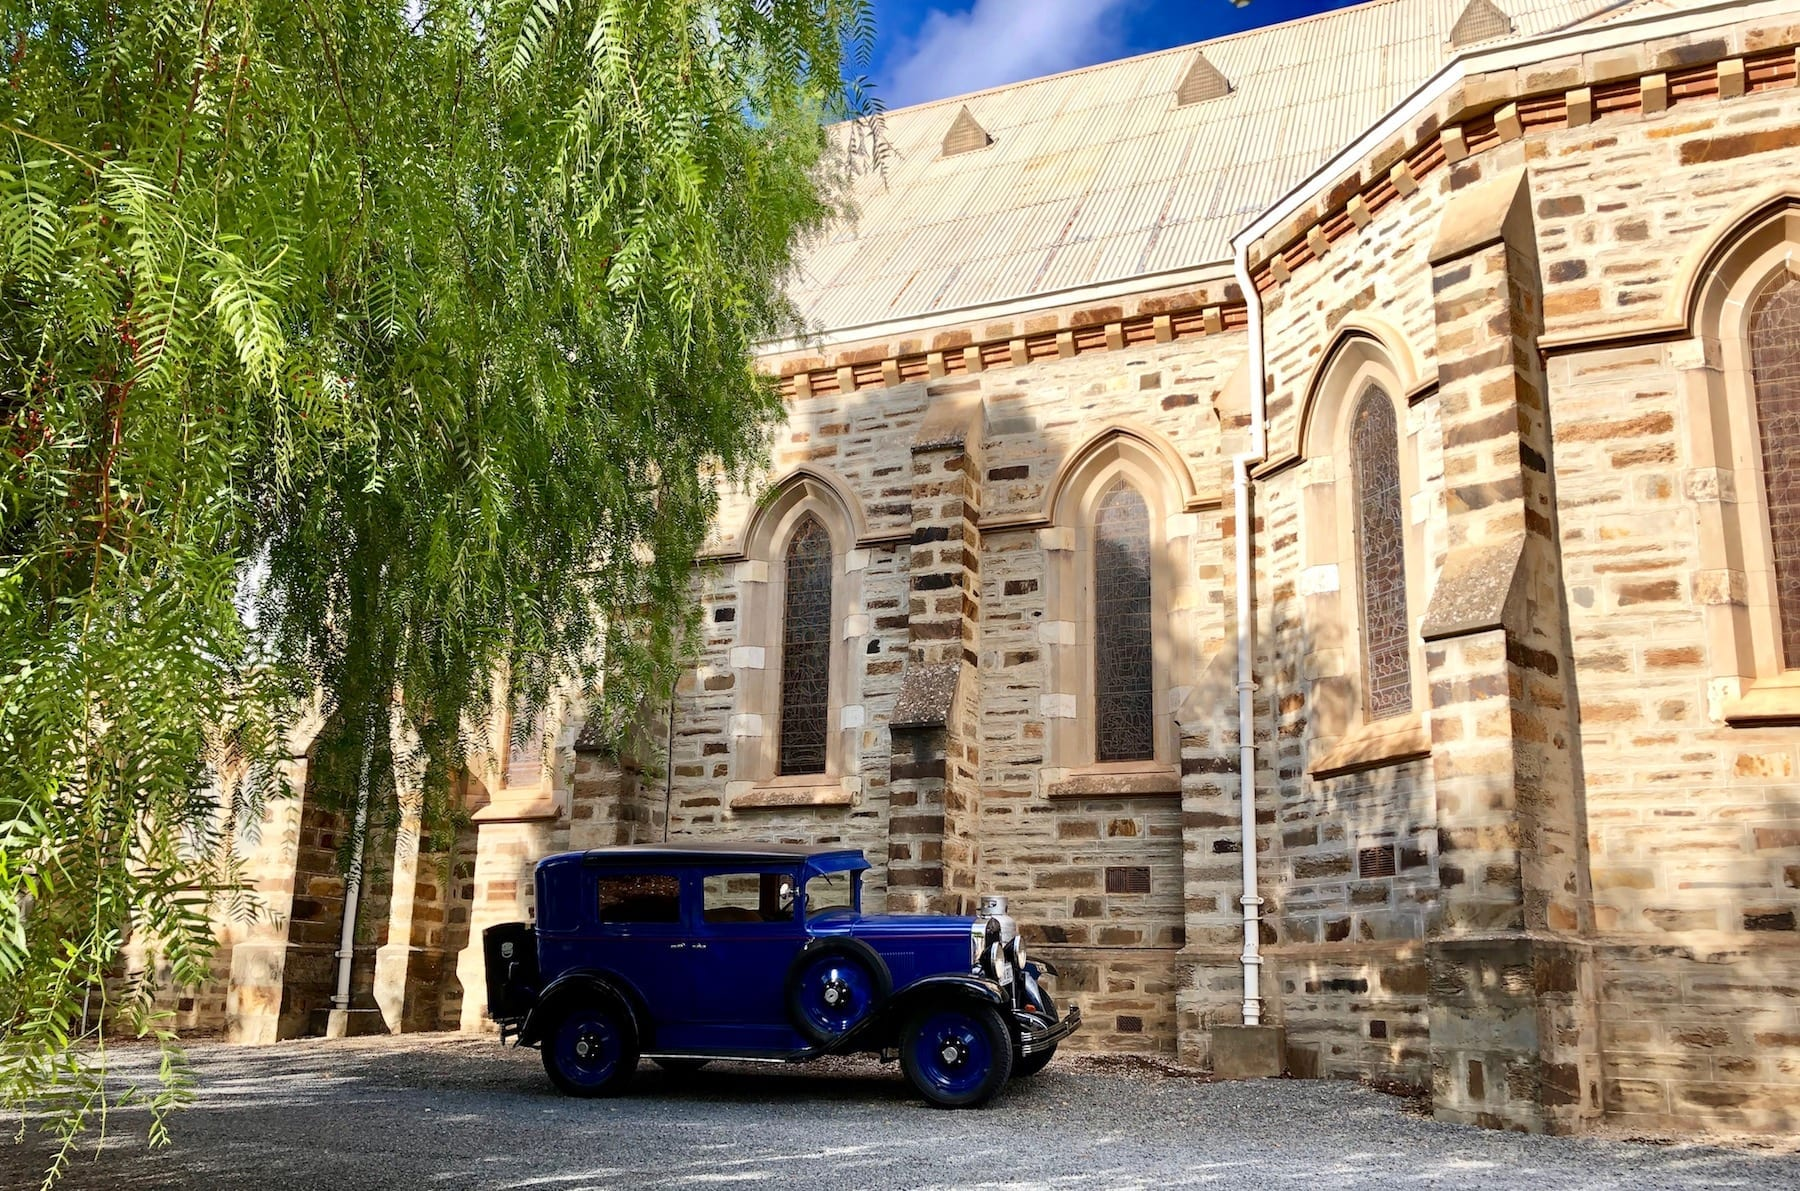 A vintage car outside the catholic church in Burra South Australia.